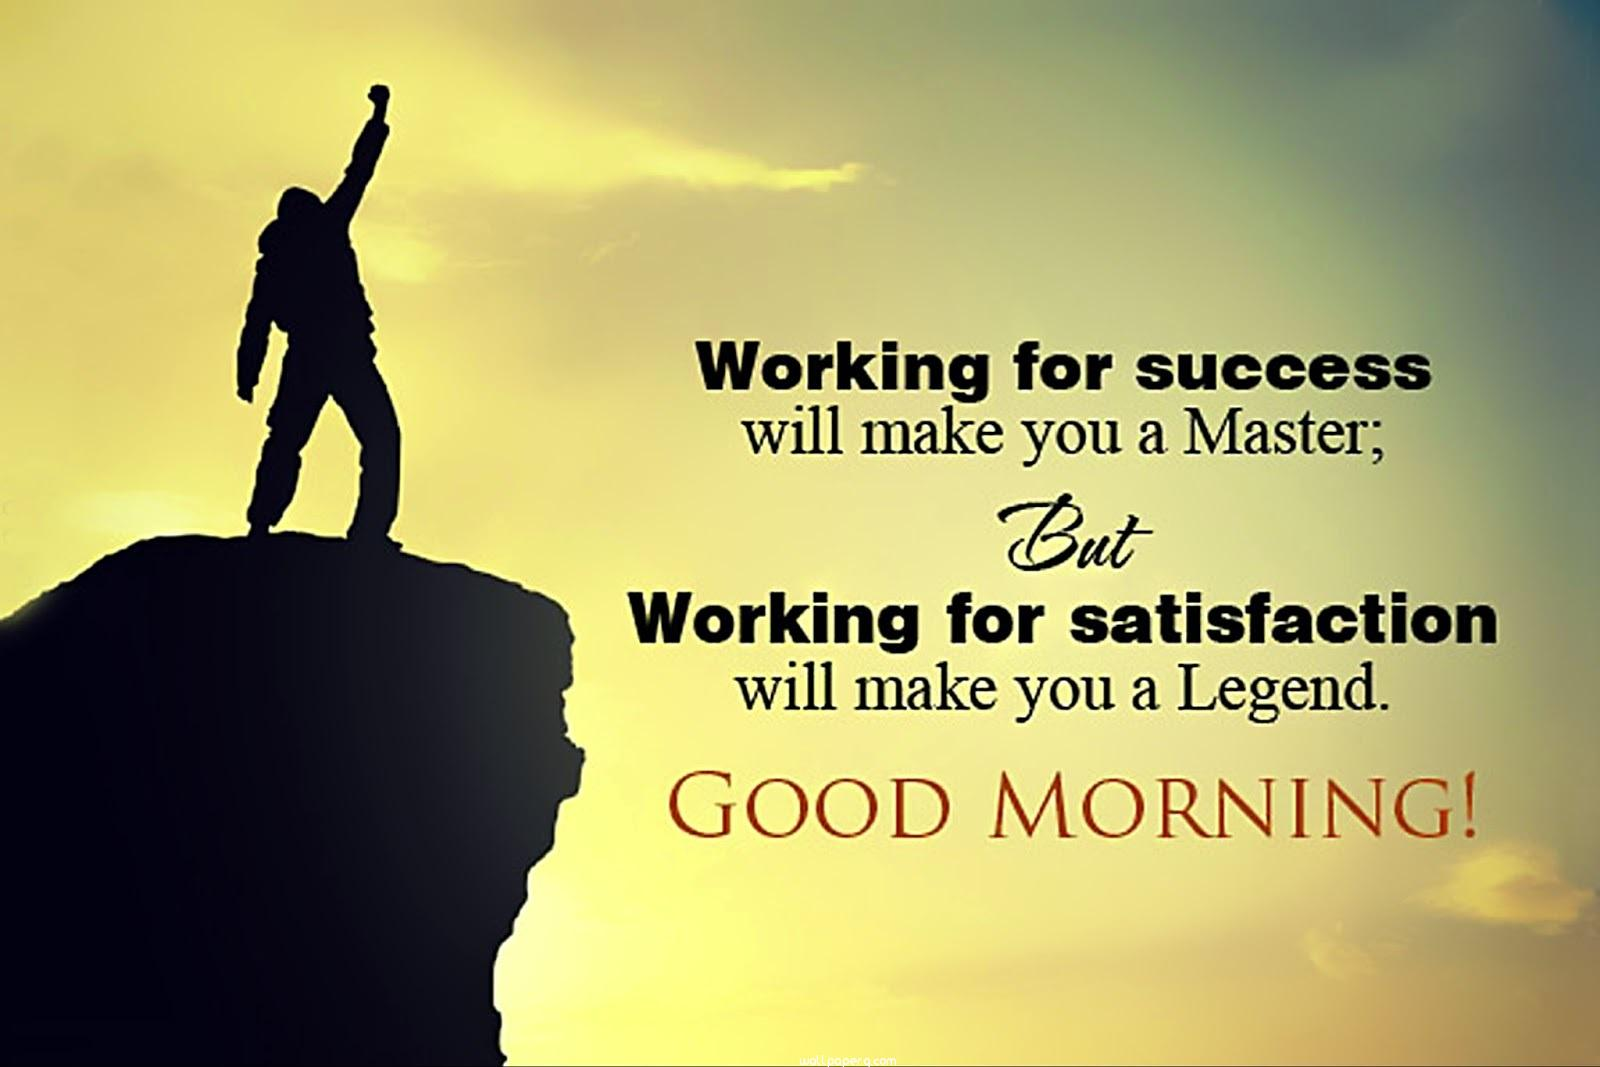 Legand good morning quotes